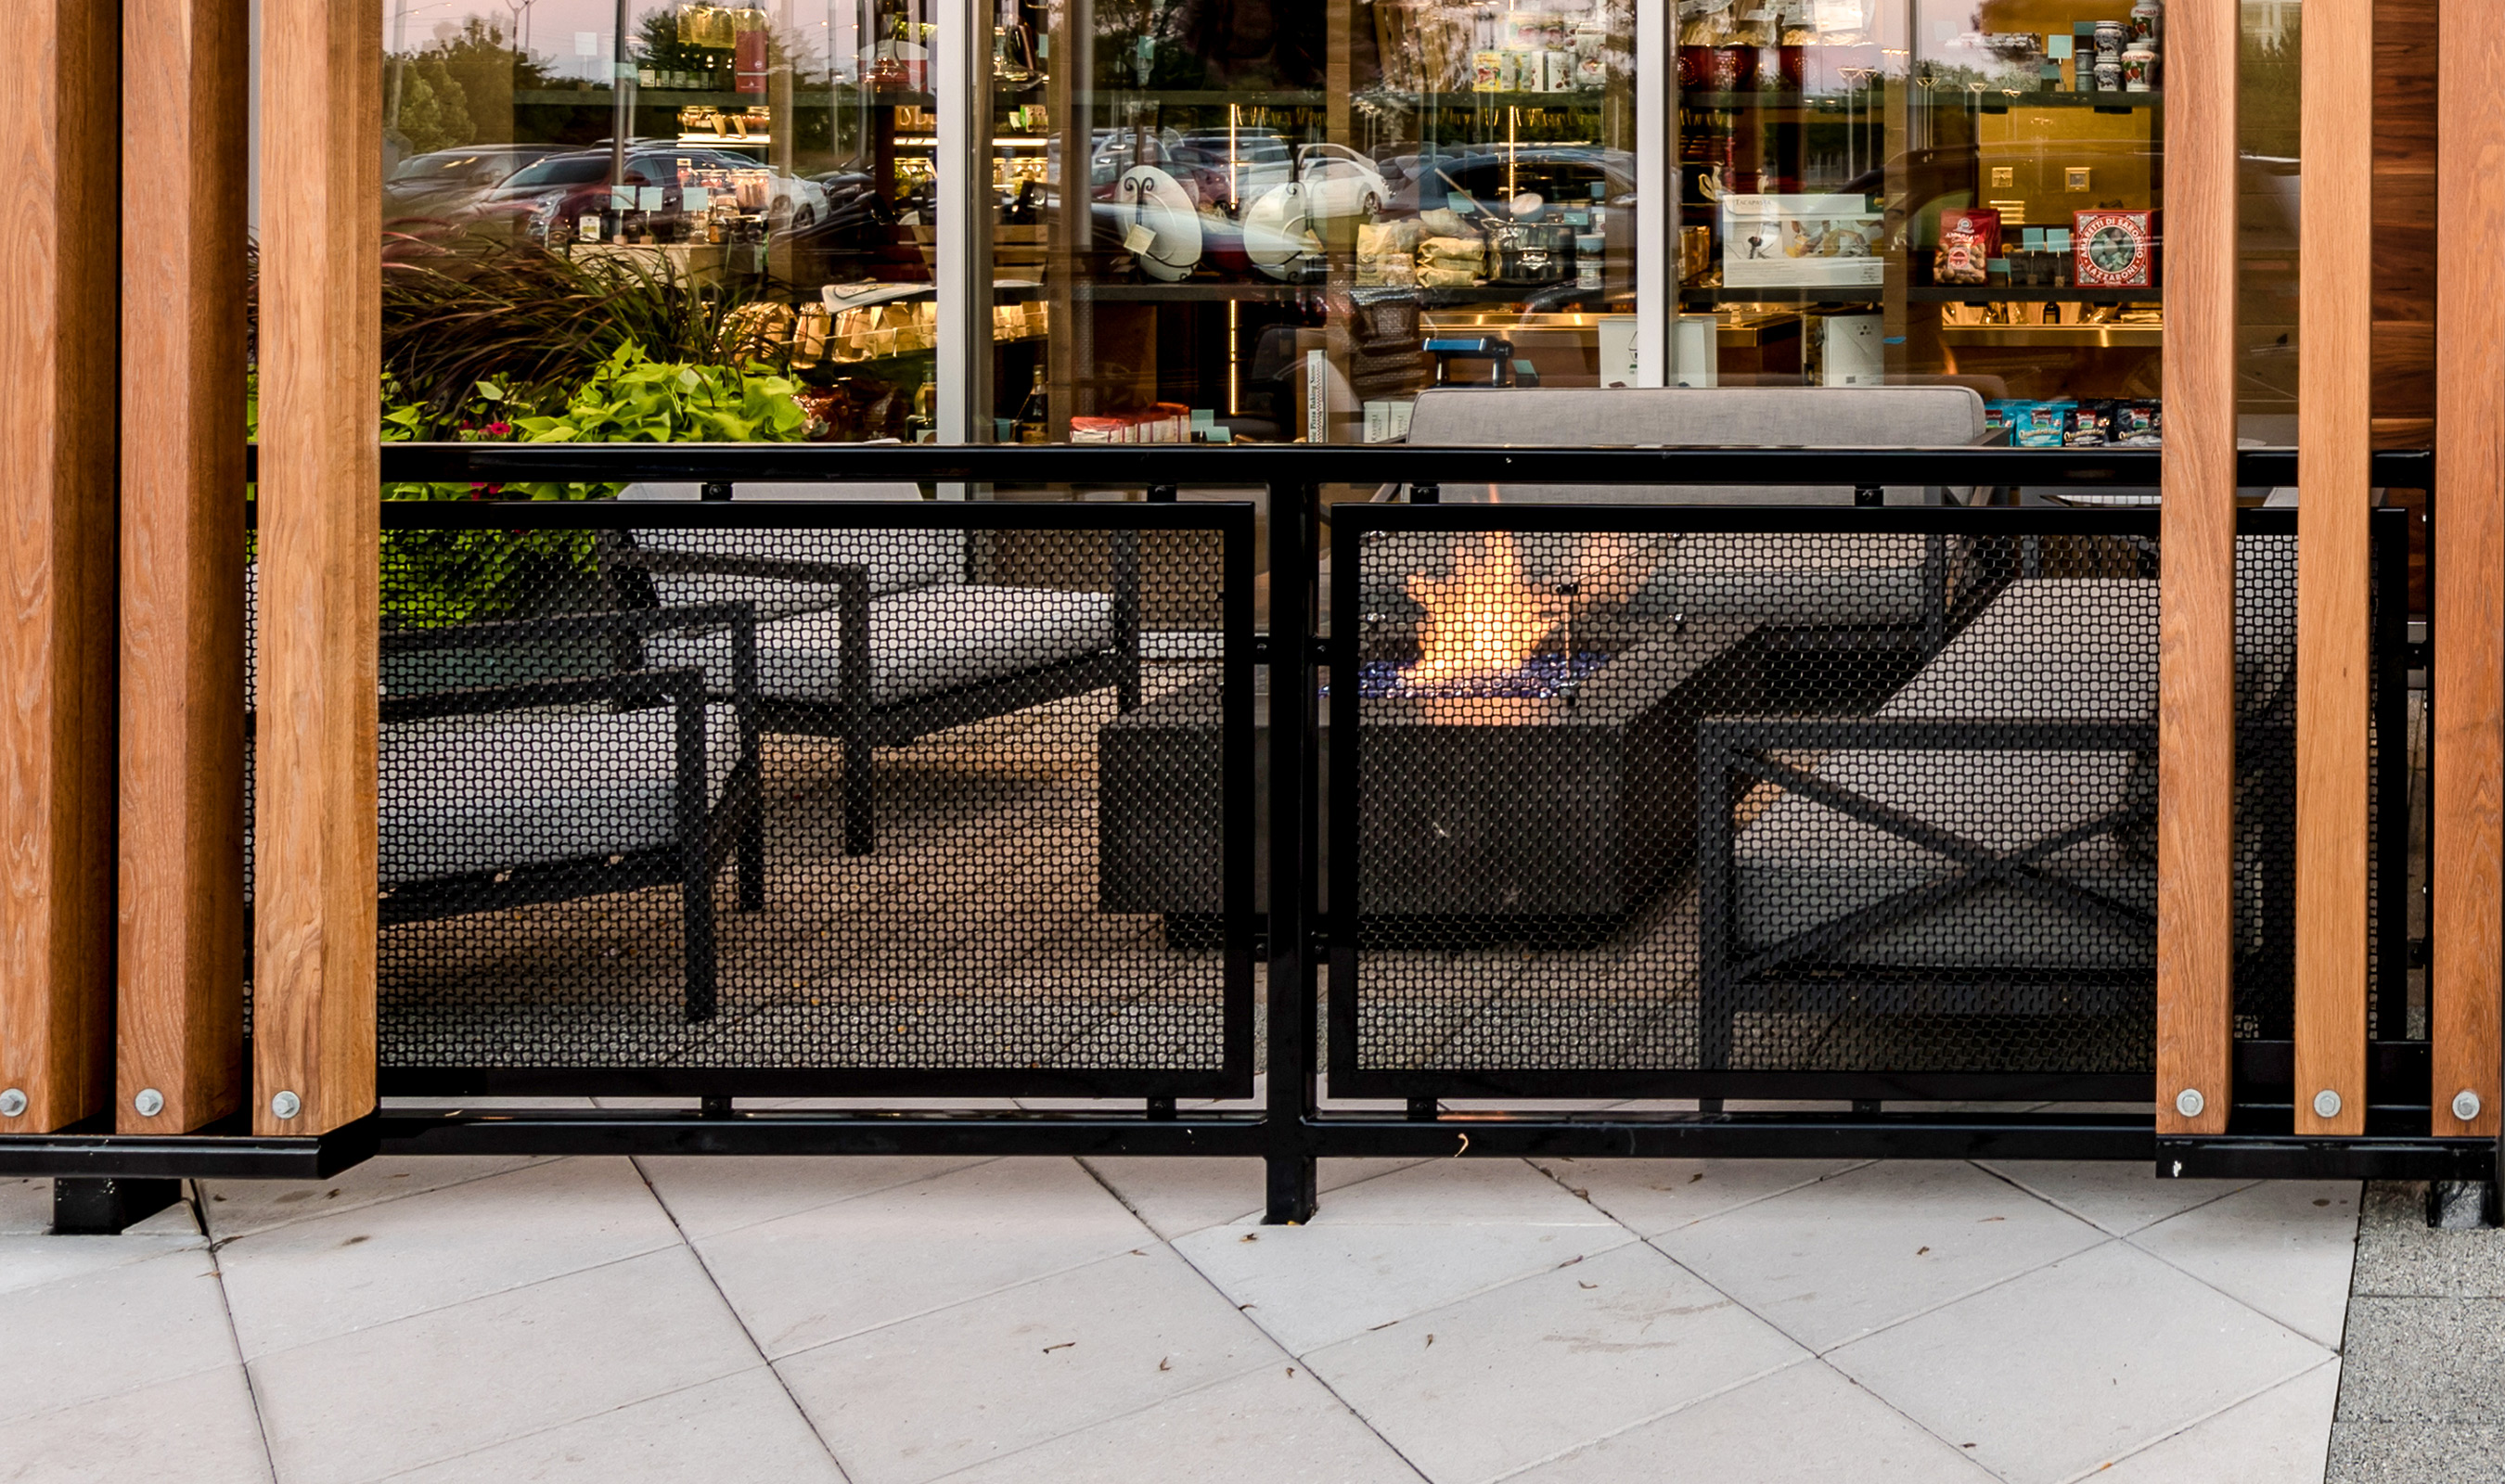 The secluded atmosphere of Che Figata's patio is thanks in part to Banker Wire's H-1 woven wire mesh pattern.